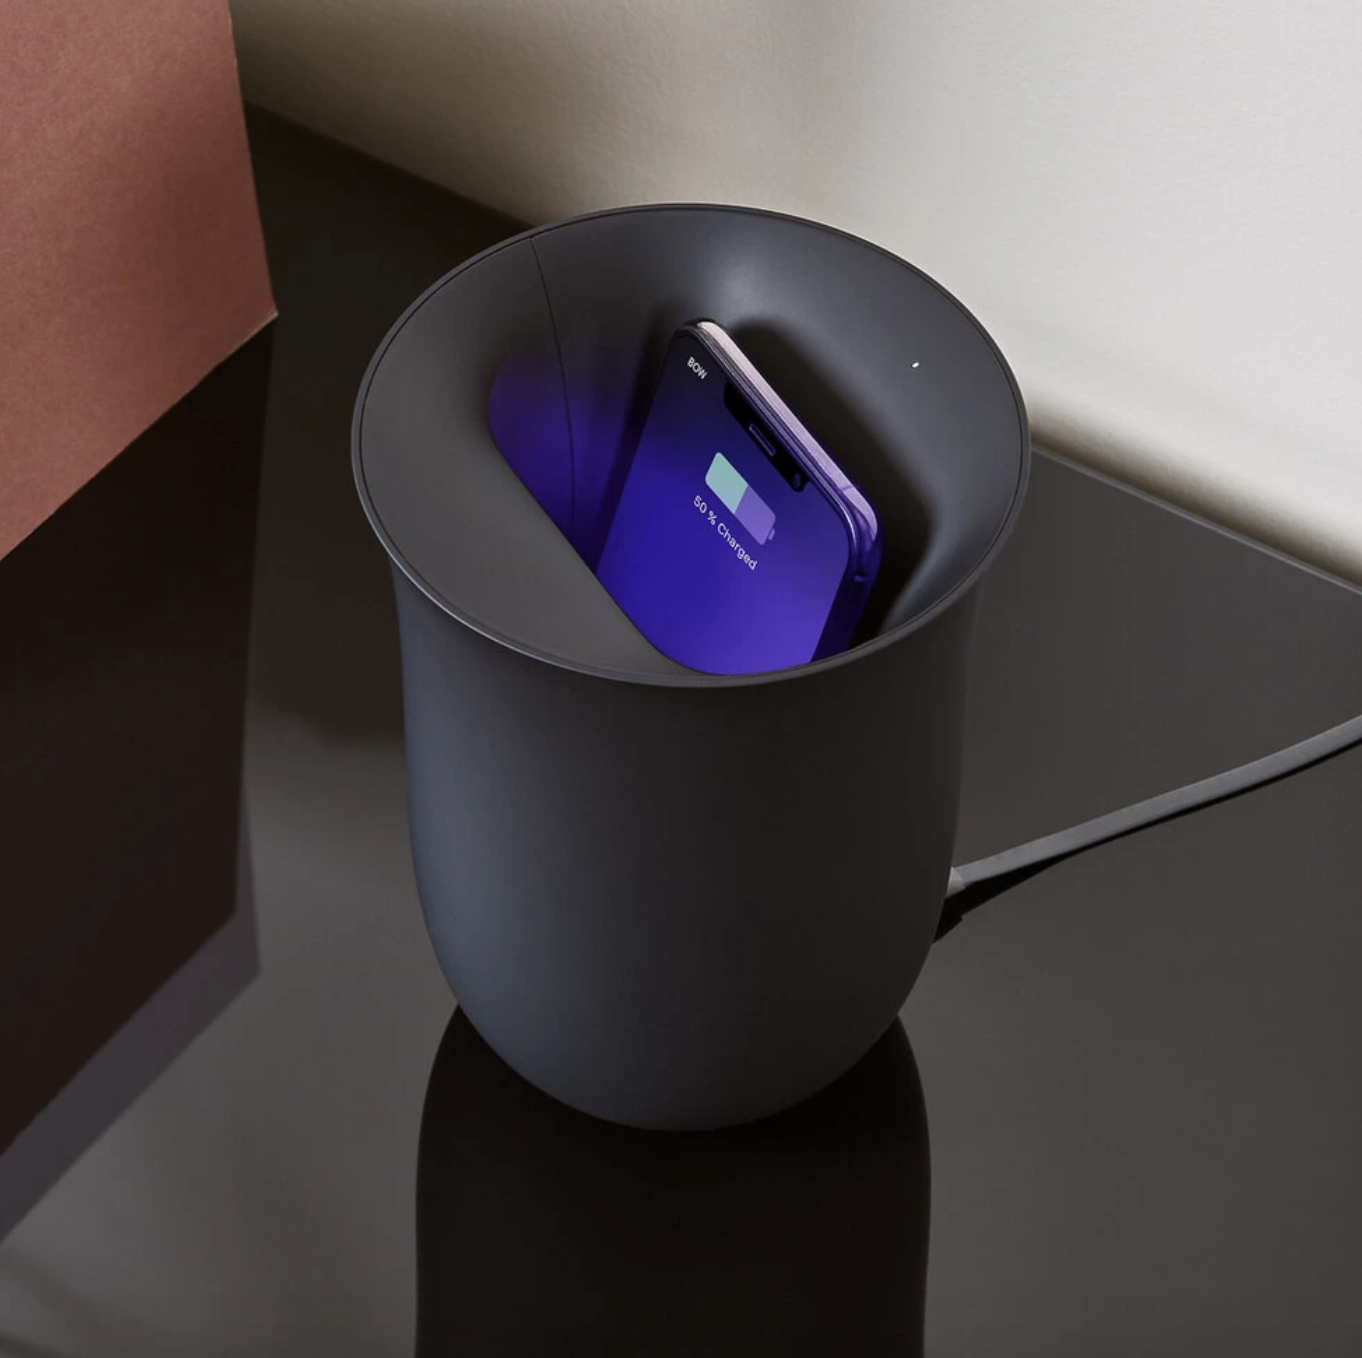 an iPhone charging inside of a black oblio phone sanitiser and wireless charger